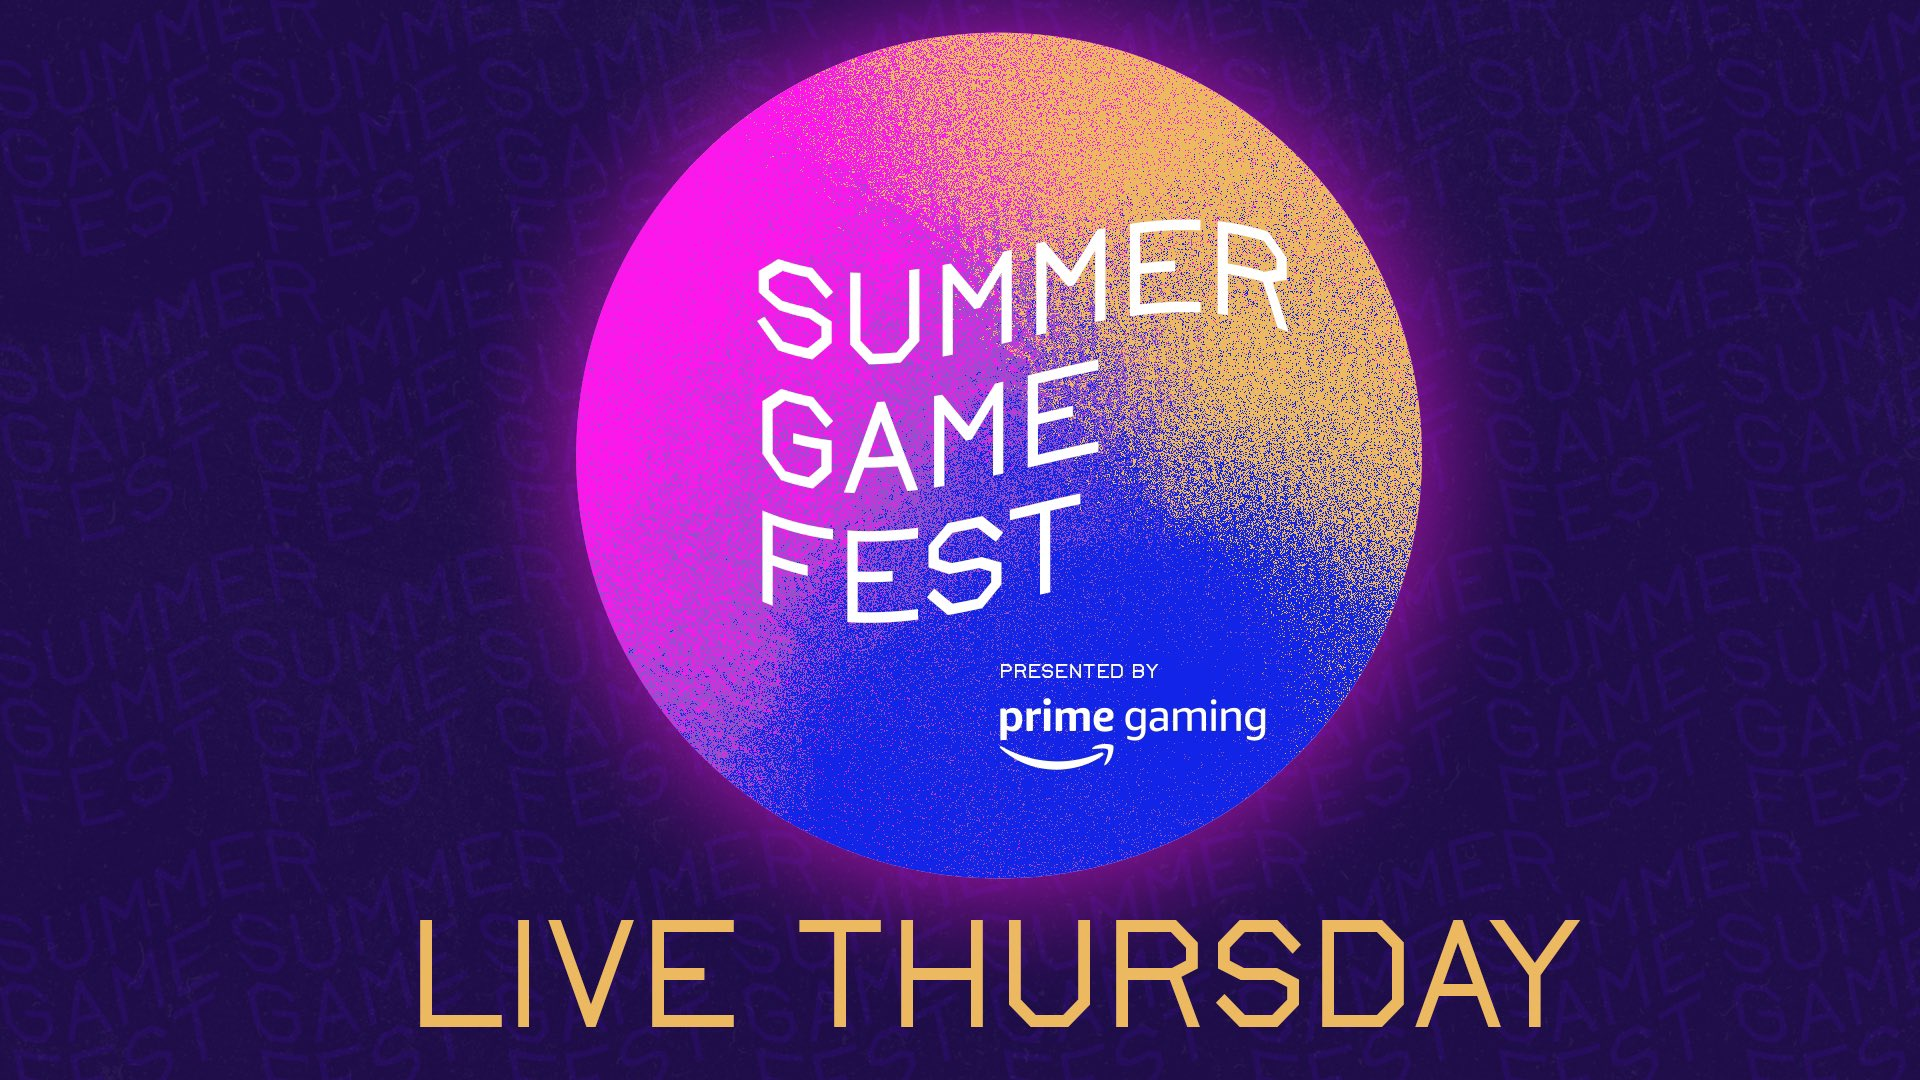 Summer Game Fest - LIVE Tomorrow! on Twitter: